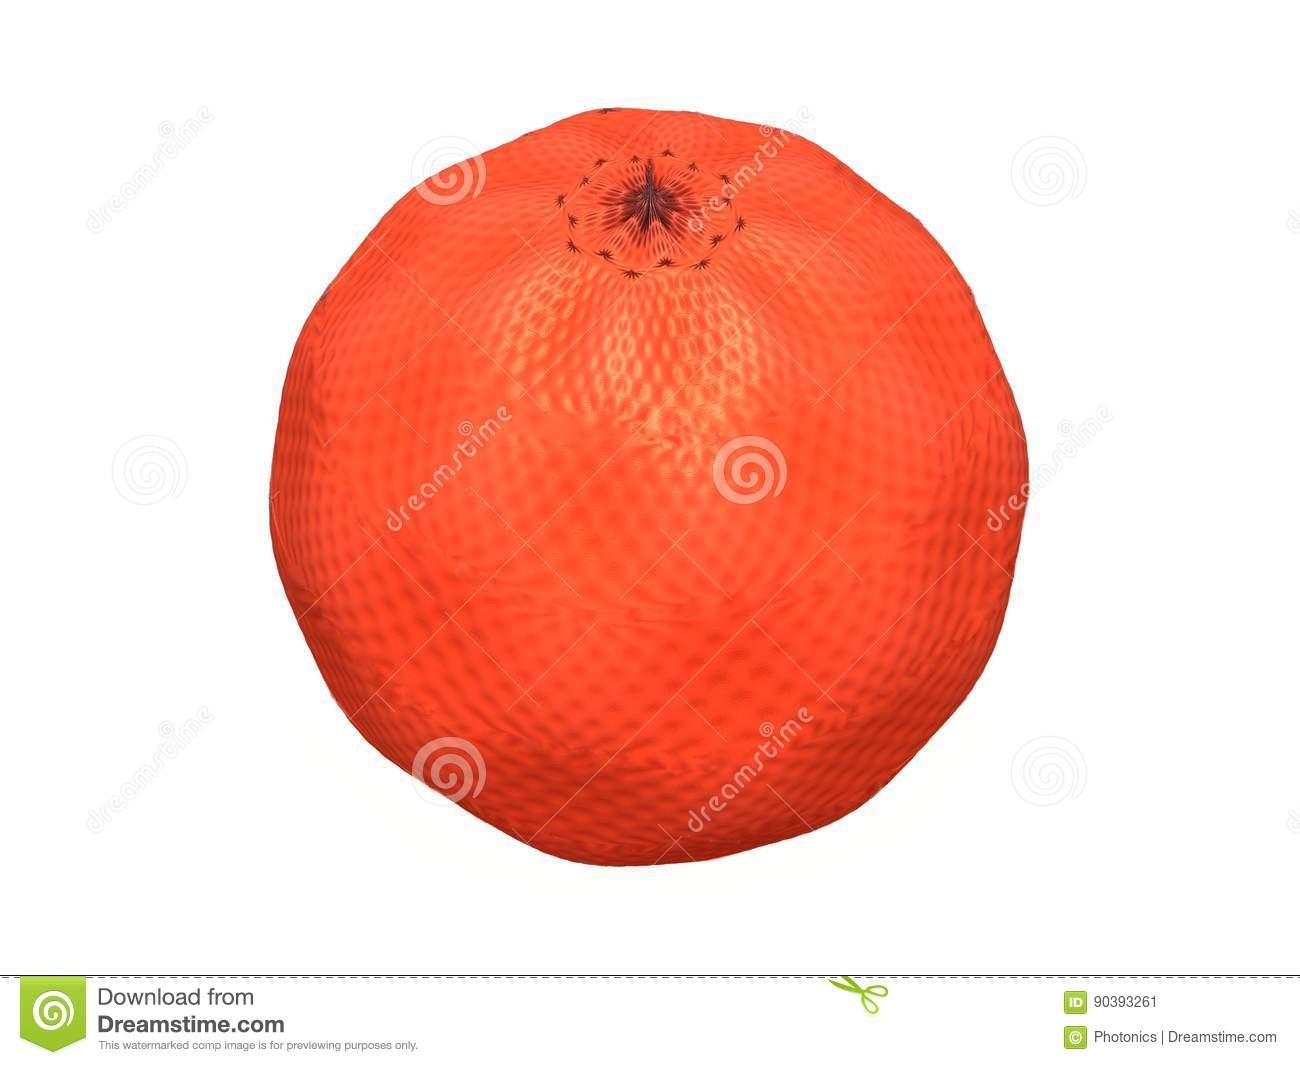 Orange Fruit Abstract Image Stock Vector Illustration Of